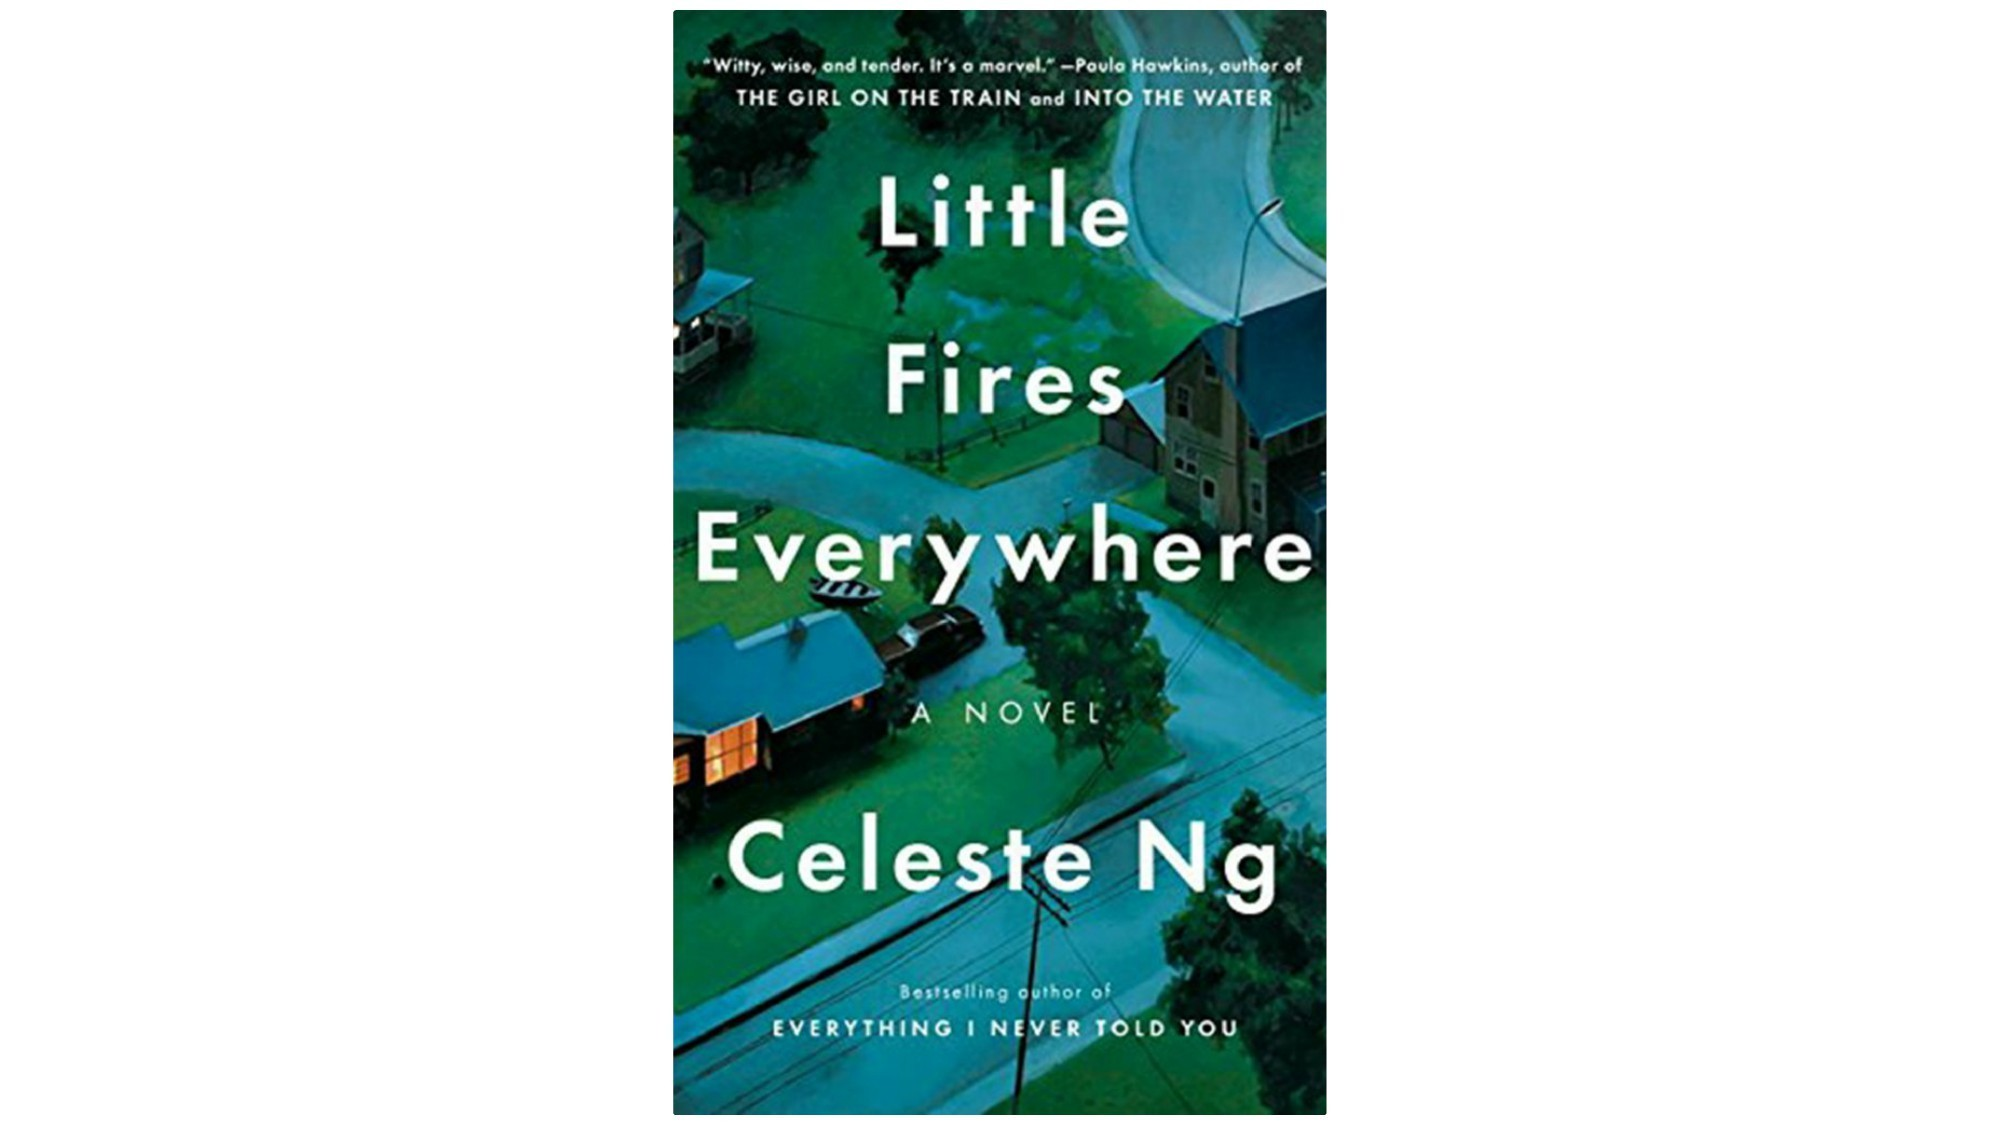 """Book jacket for Celeste Ng's """"Little Fires Everywhere."""""""